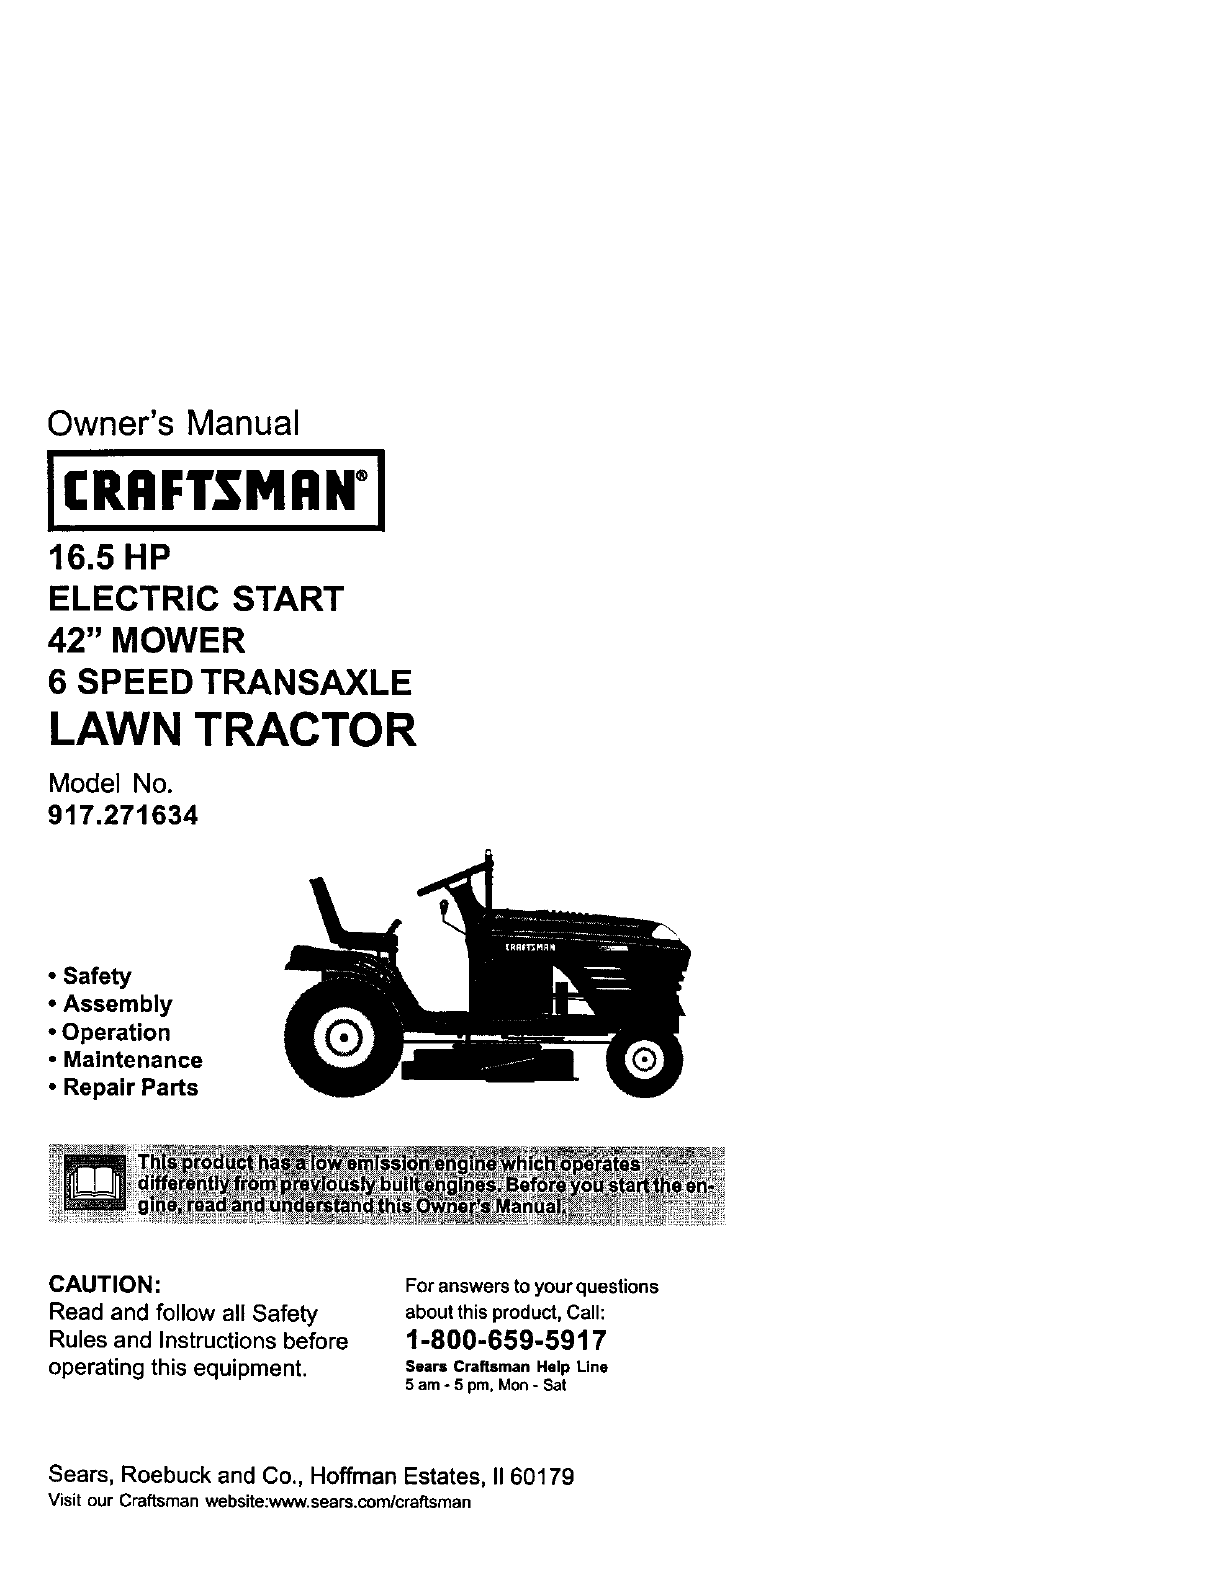 Sears Parts Manuals Lawn Tractors Craftsman Electric 3 In 1 Mower Electrical Schematics Model 900370510